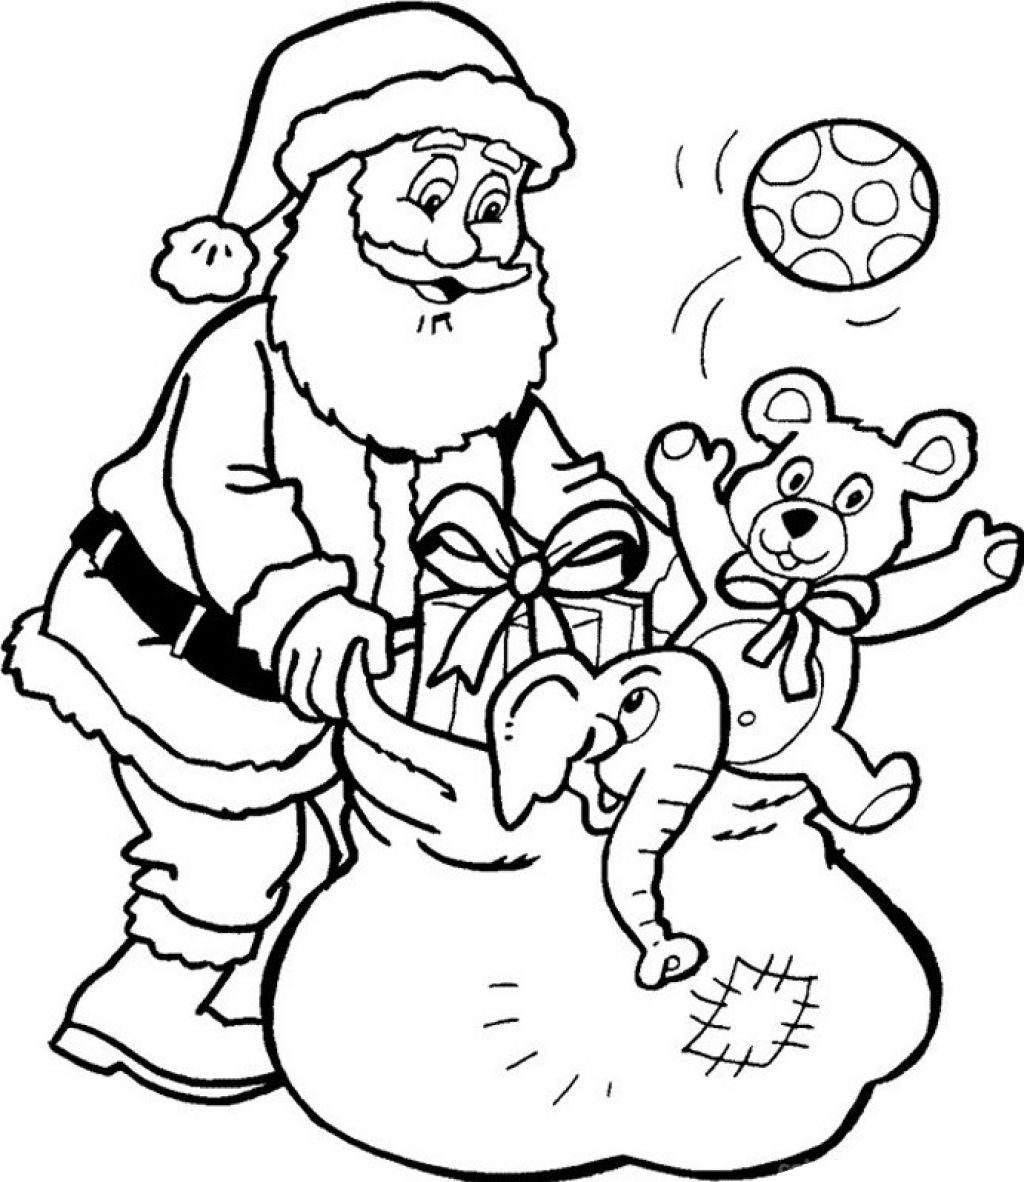 Santa Colored In With Claus And Presents Printable Coloring Pages Christmas Some